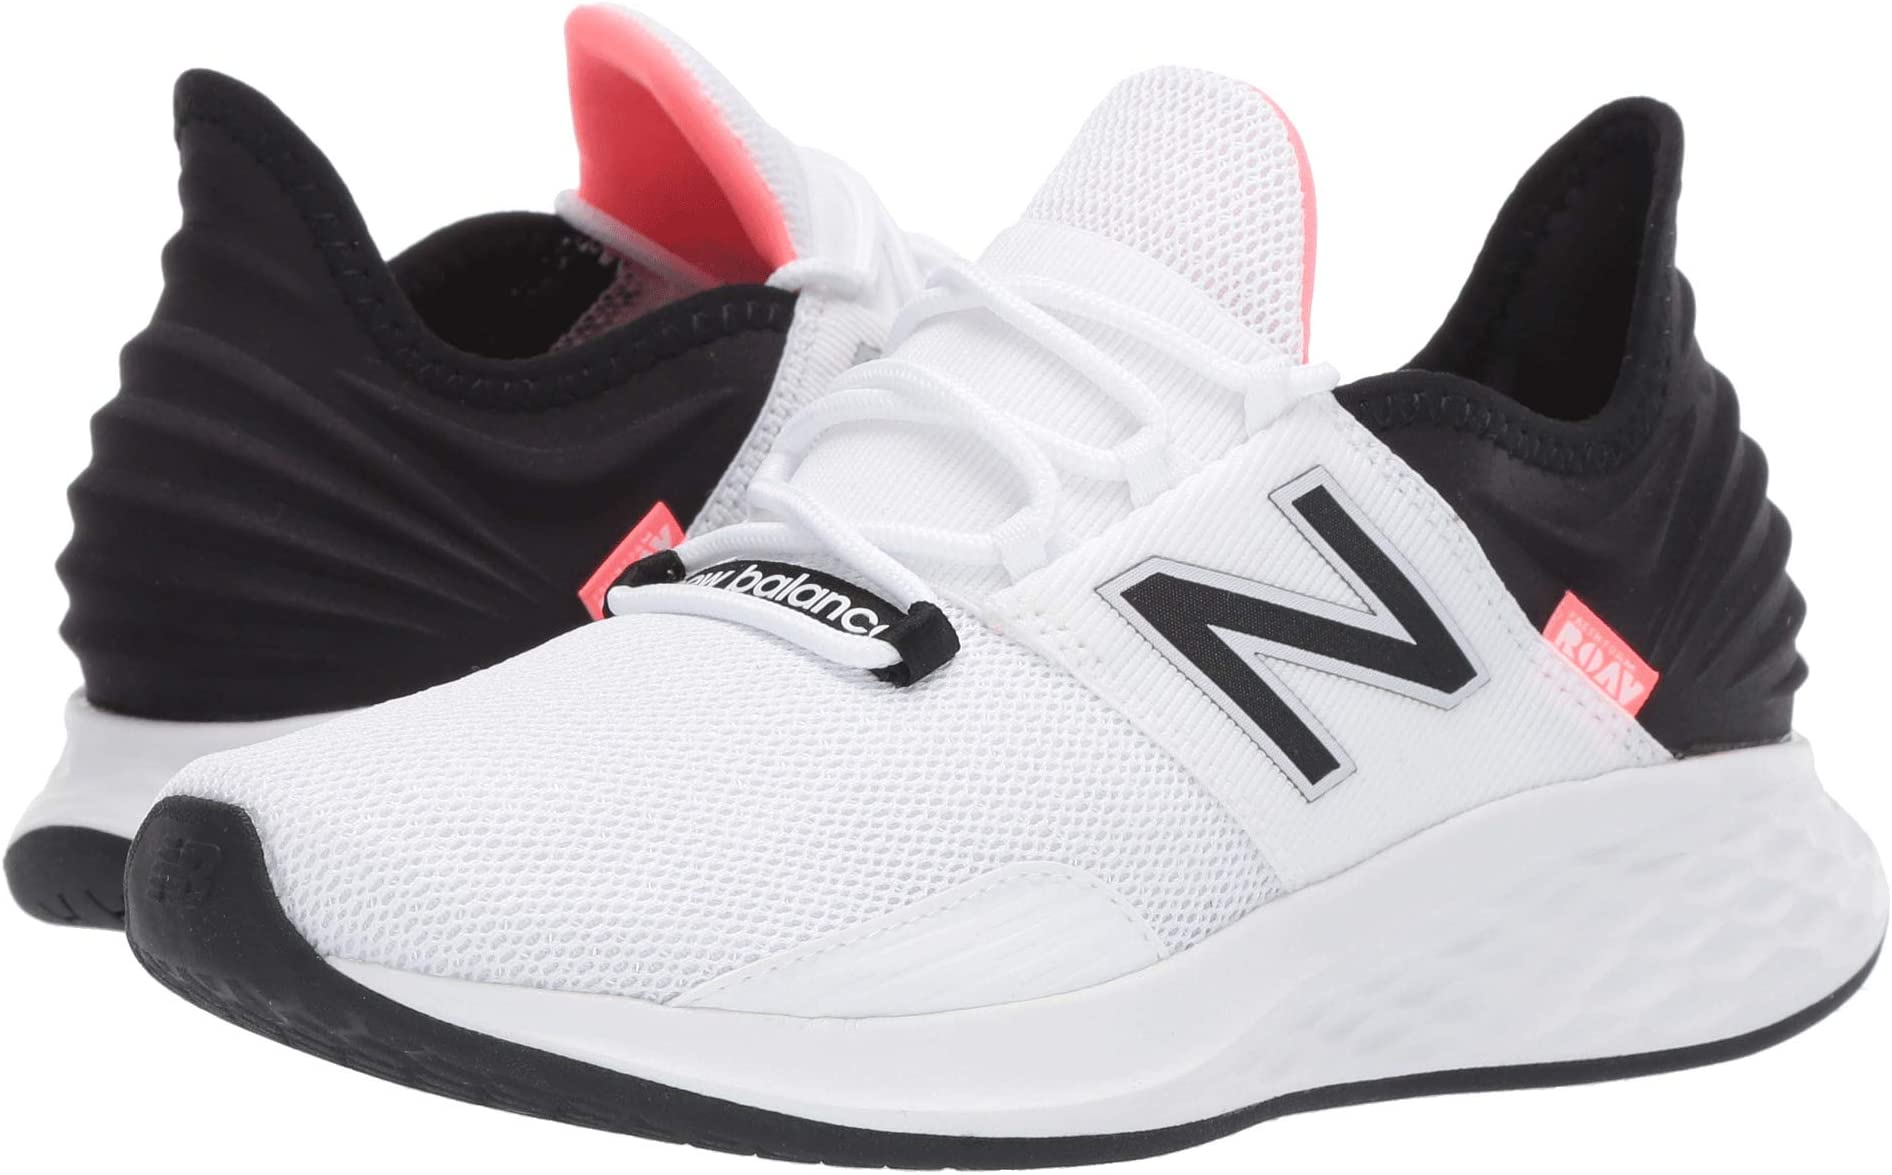 1e5adc316cac2 New Balance Shoes, Clothing, Activewear, Socks | Zappos.com